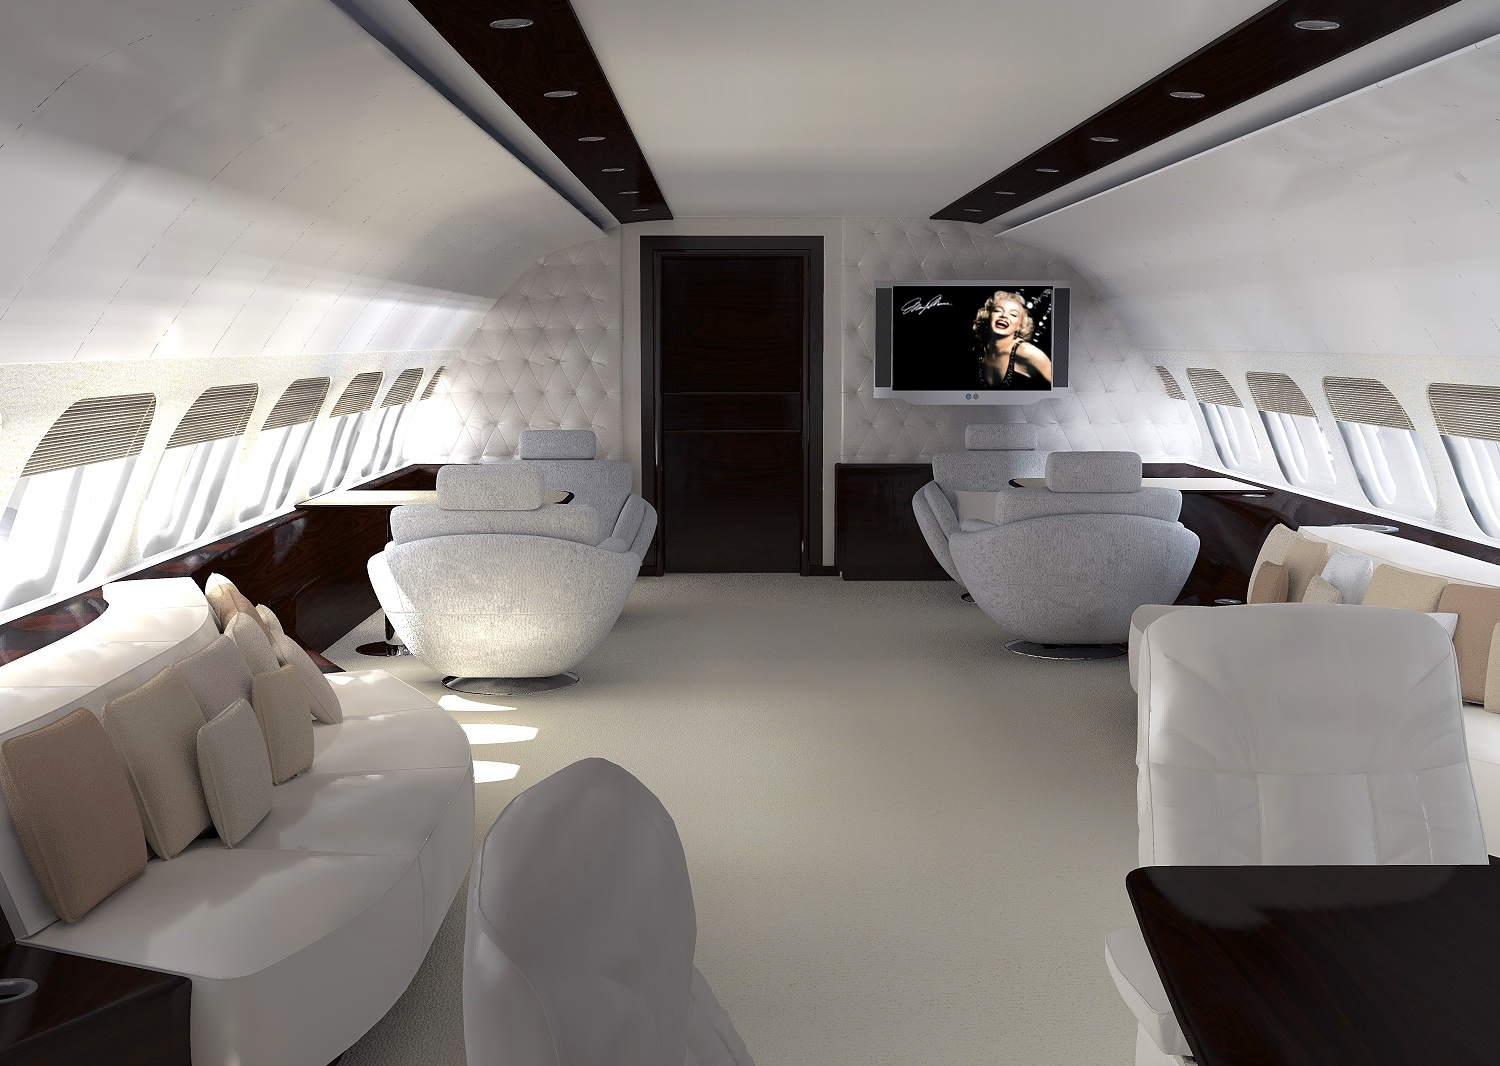 Business and private jet interiors